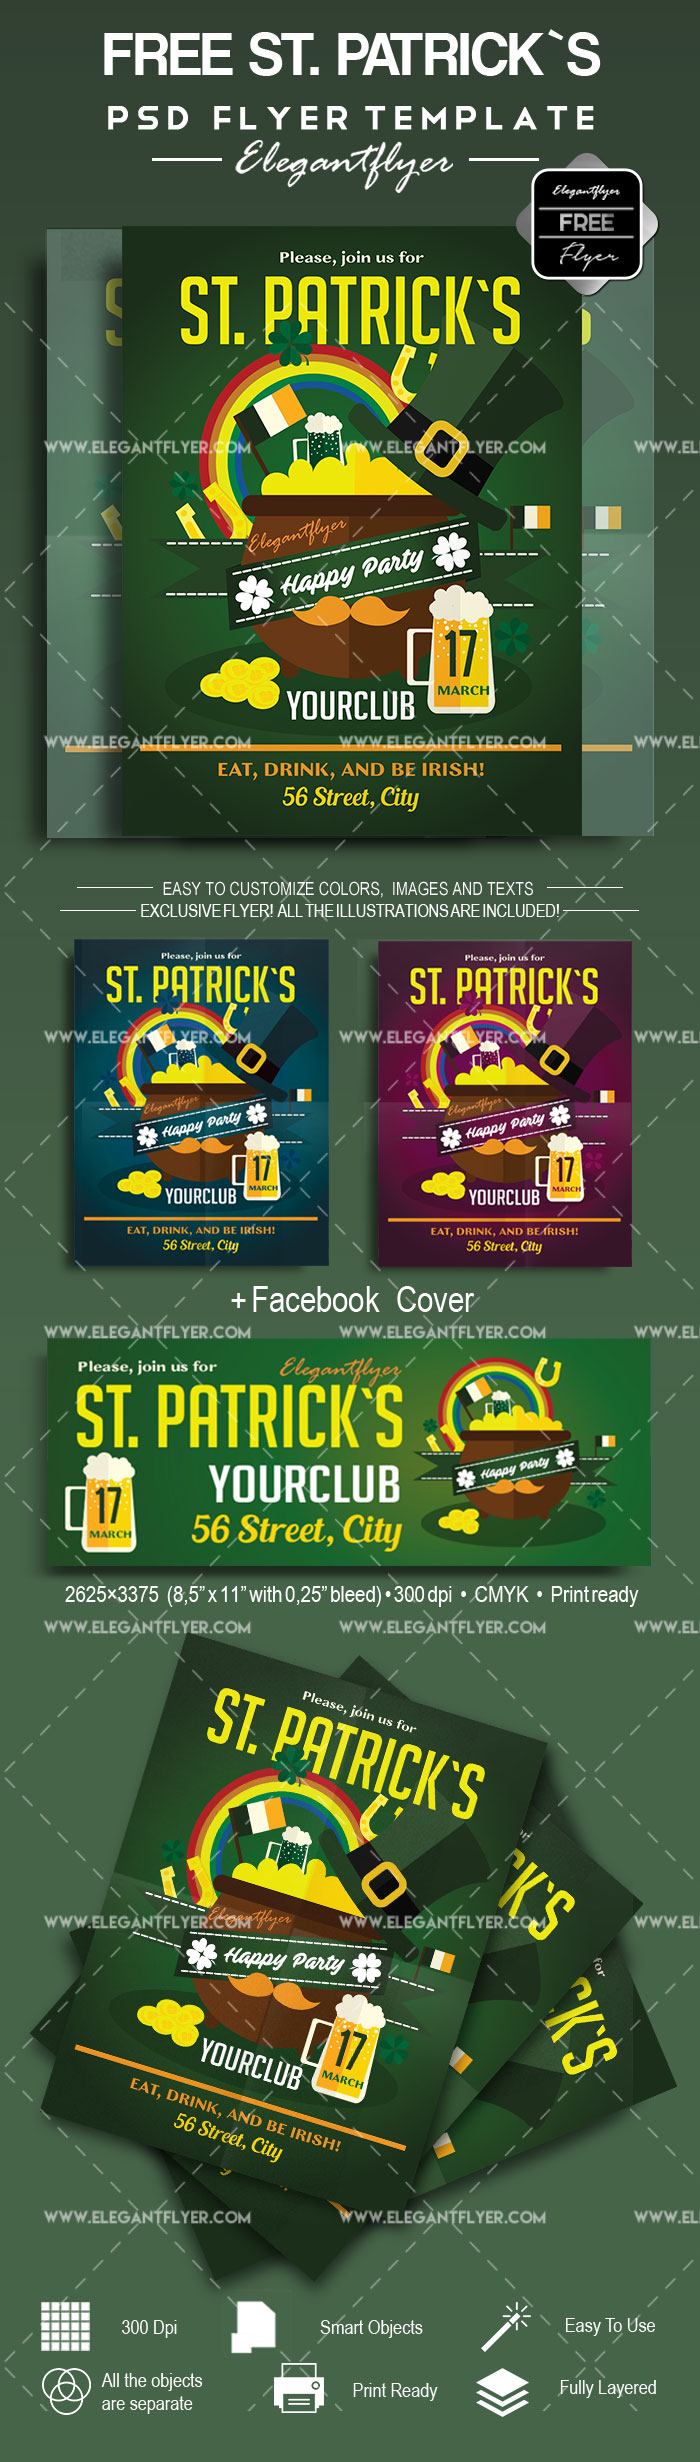 st  patrick s day  u2013 free flyer psd template  u2013 by elegantflyer